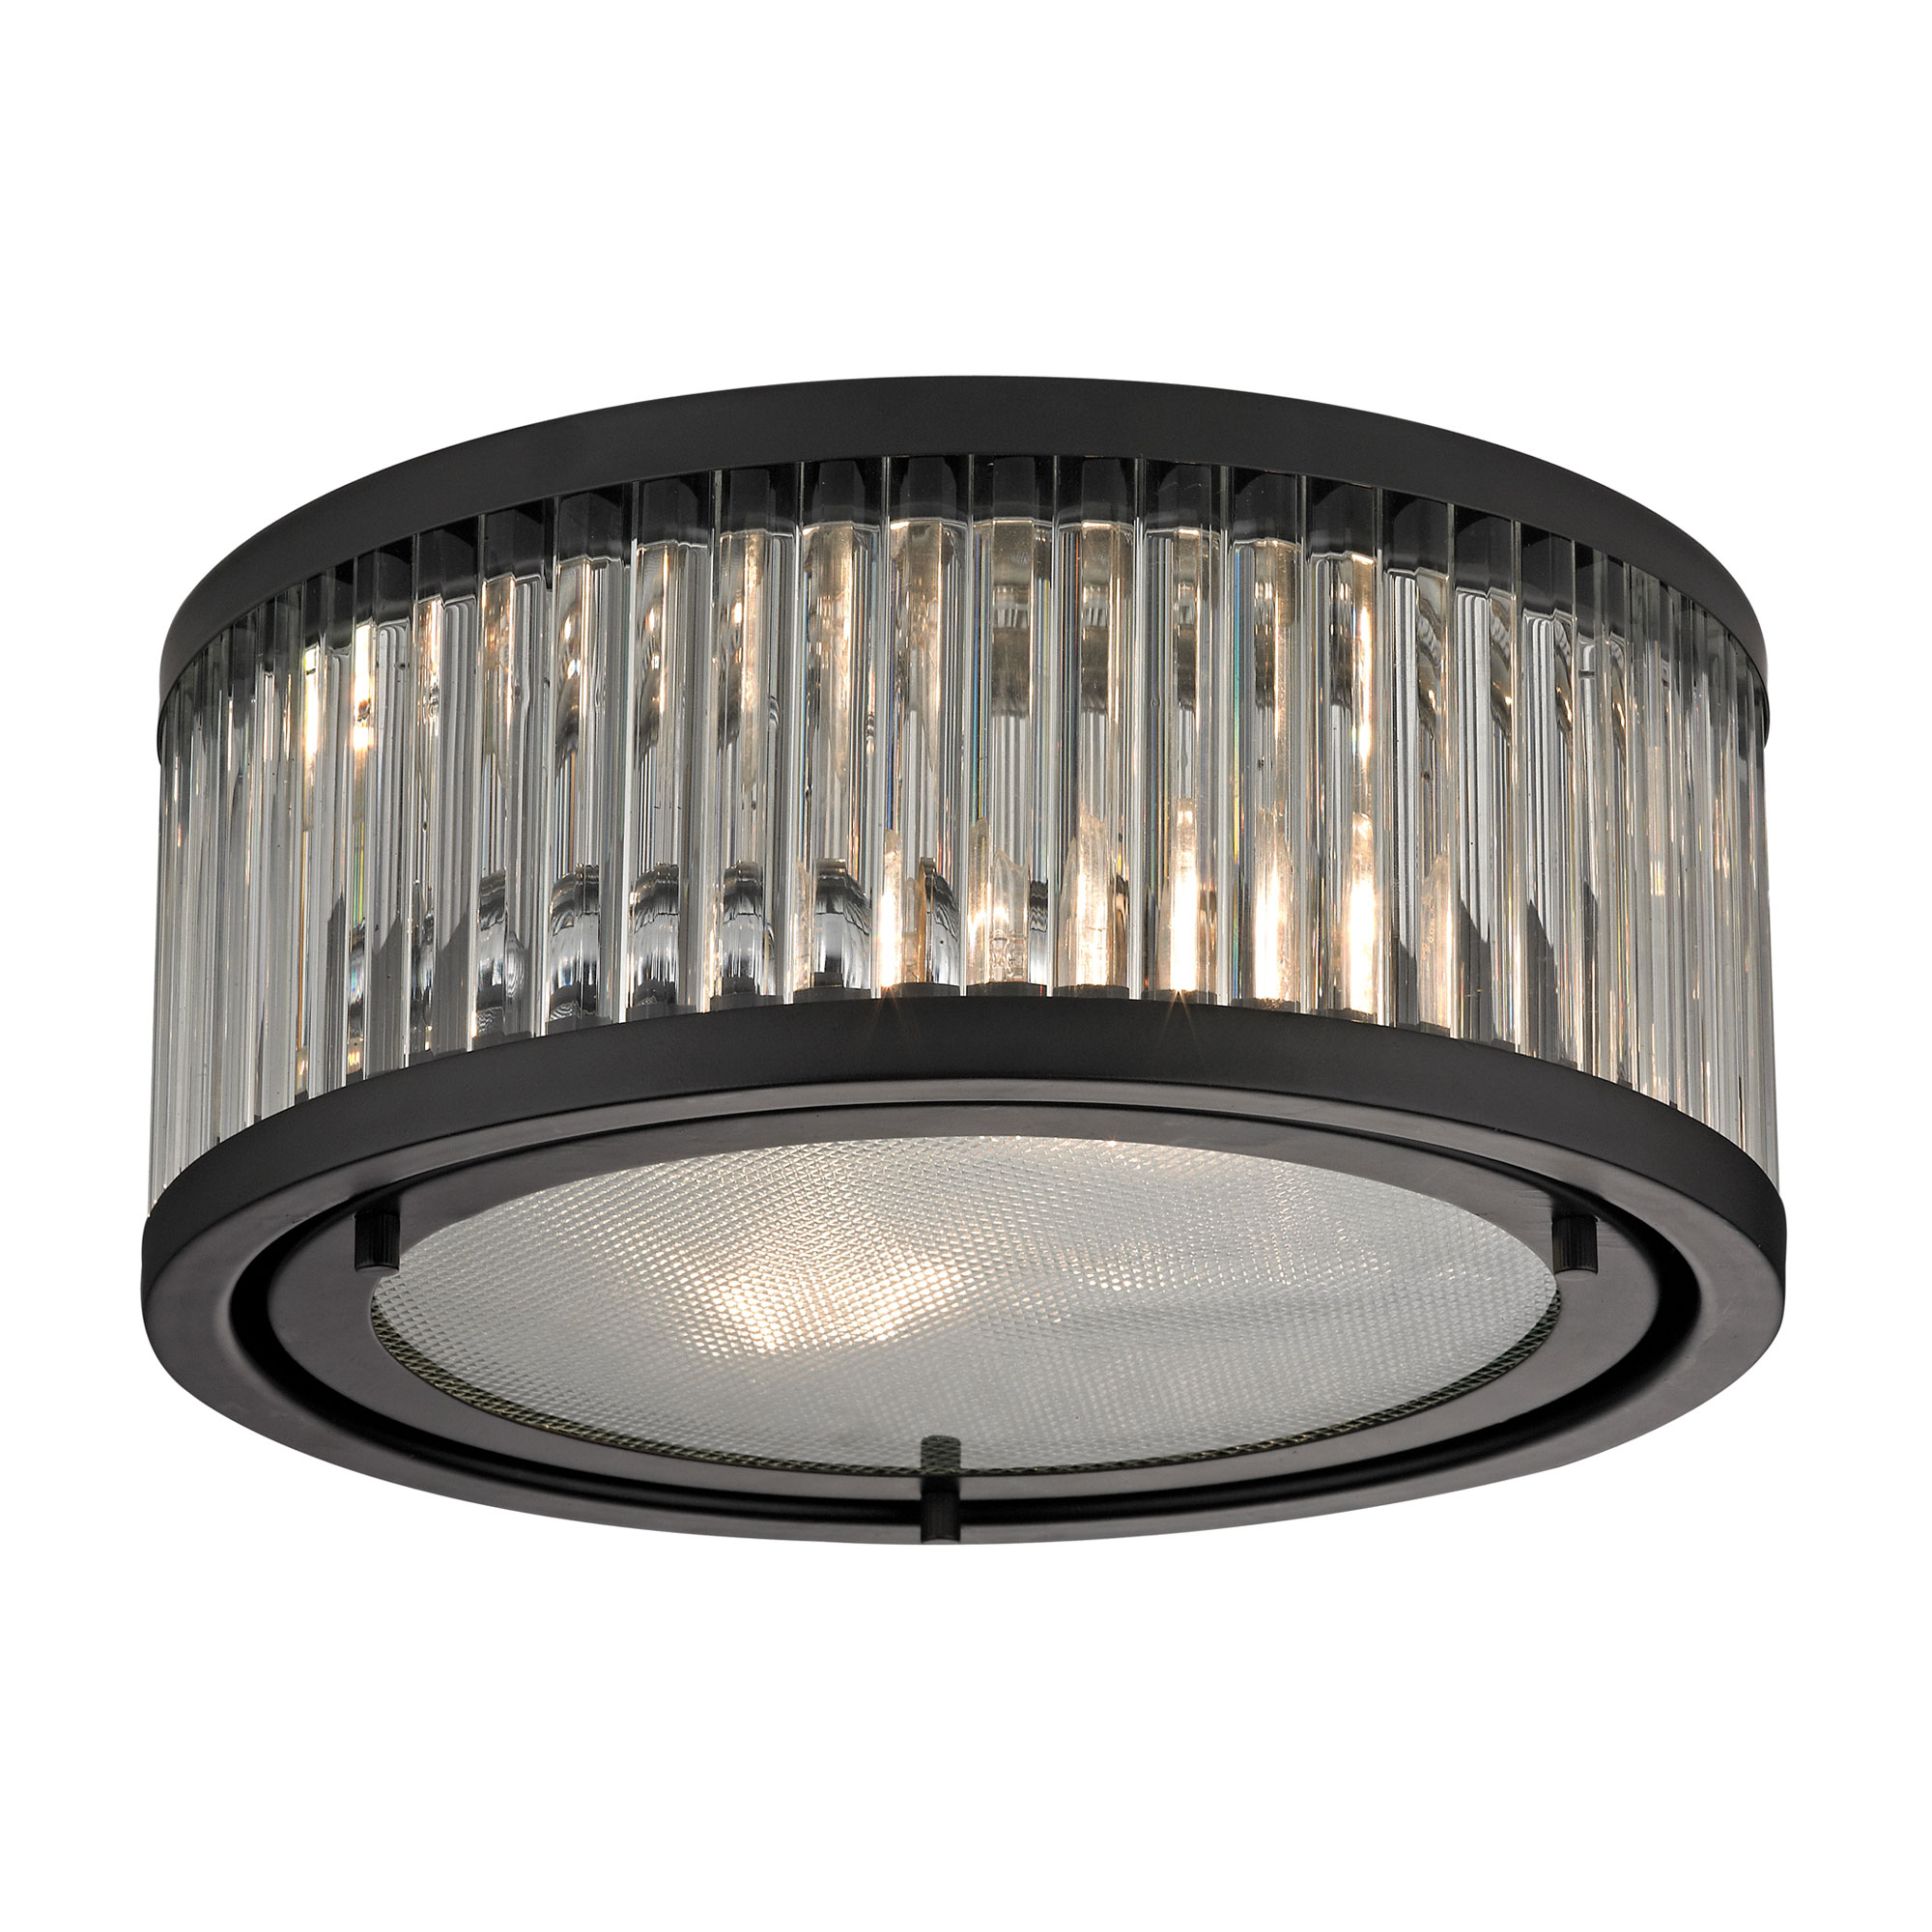 sc 1 st  Lightology & Linden Ceiling Flush Mount by Elk Lighting | 46132/2